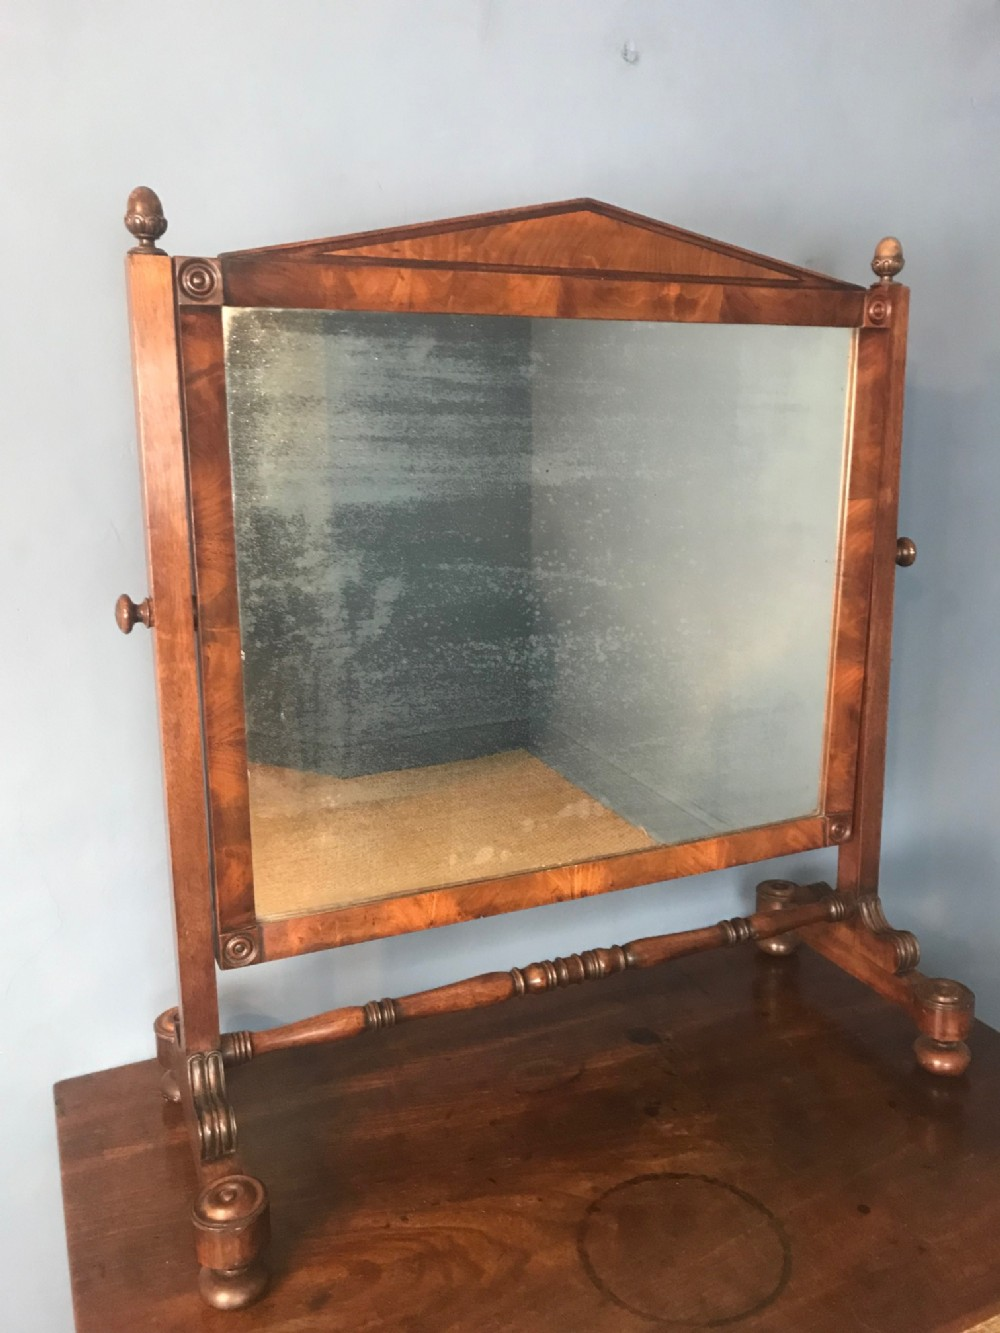 a regency mahogany dressing table mirror attributed to gillows of lancaster circa 1820